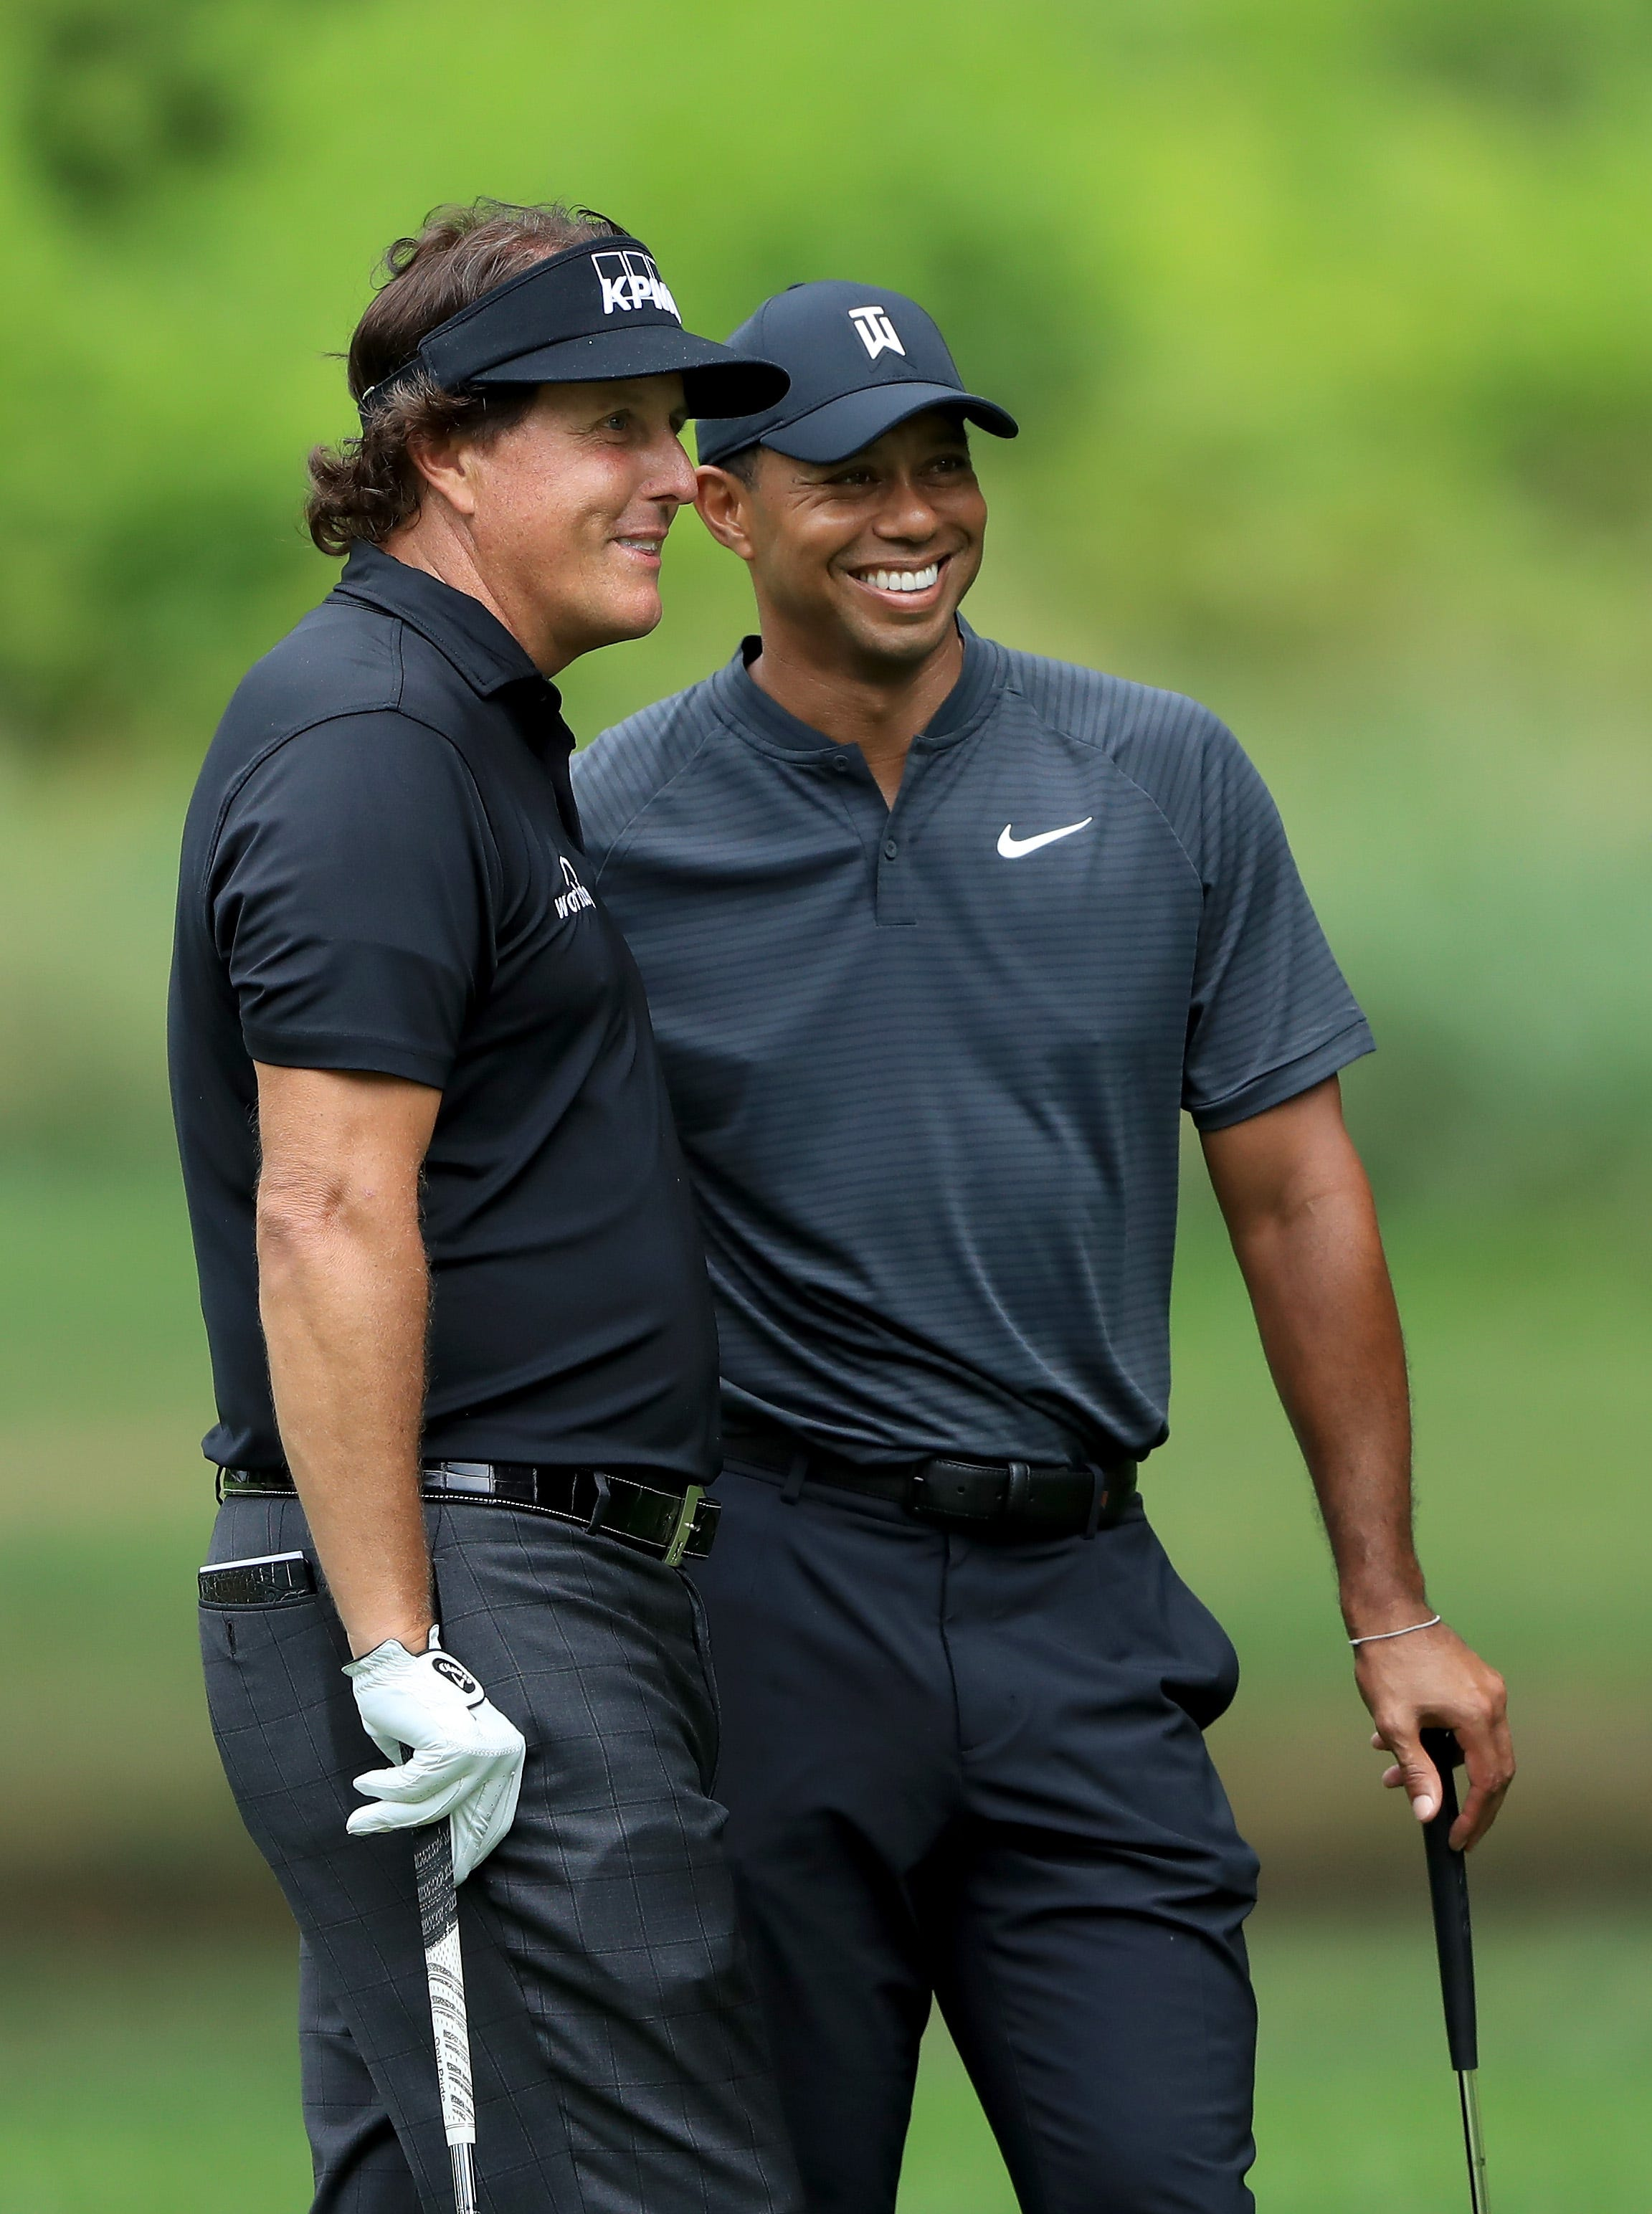 Daugherty: Tiger Woods vs. Phil Mickelson on pay-per-view is more about greed than golf